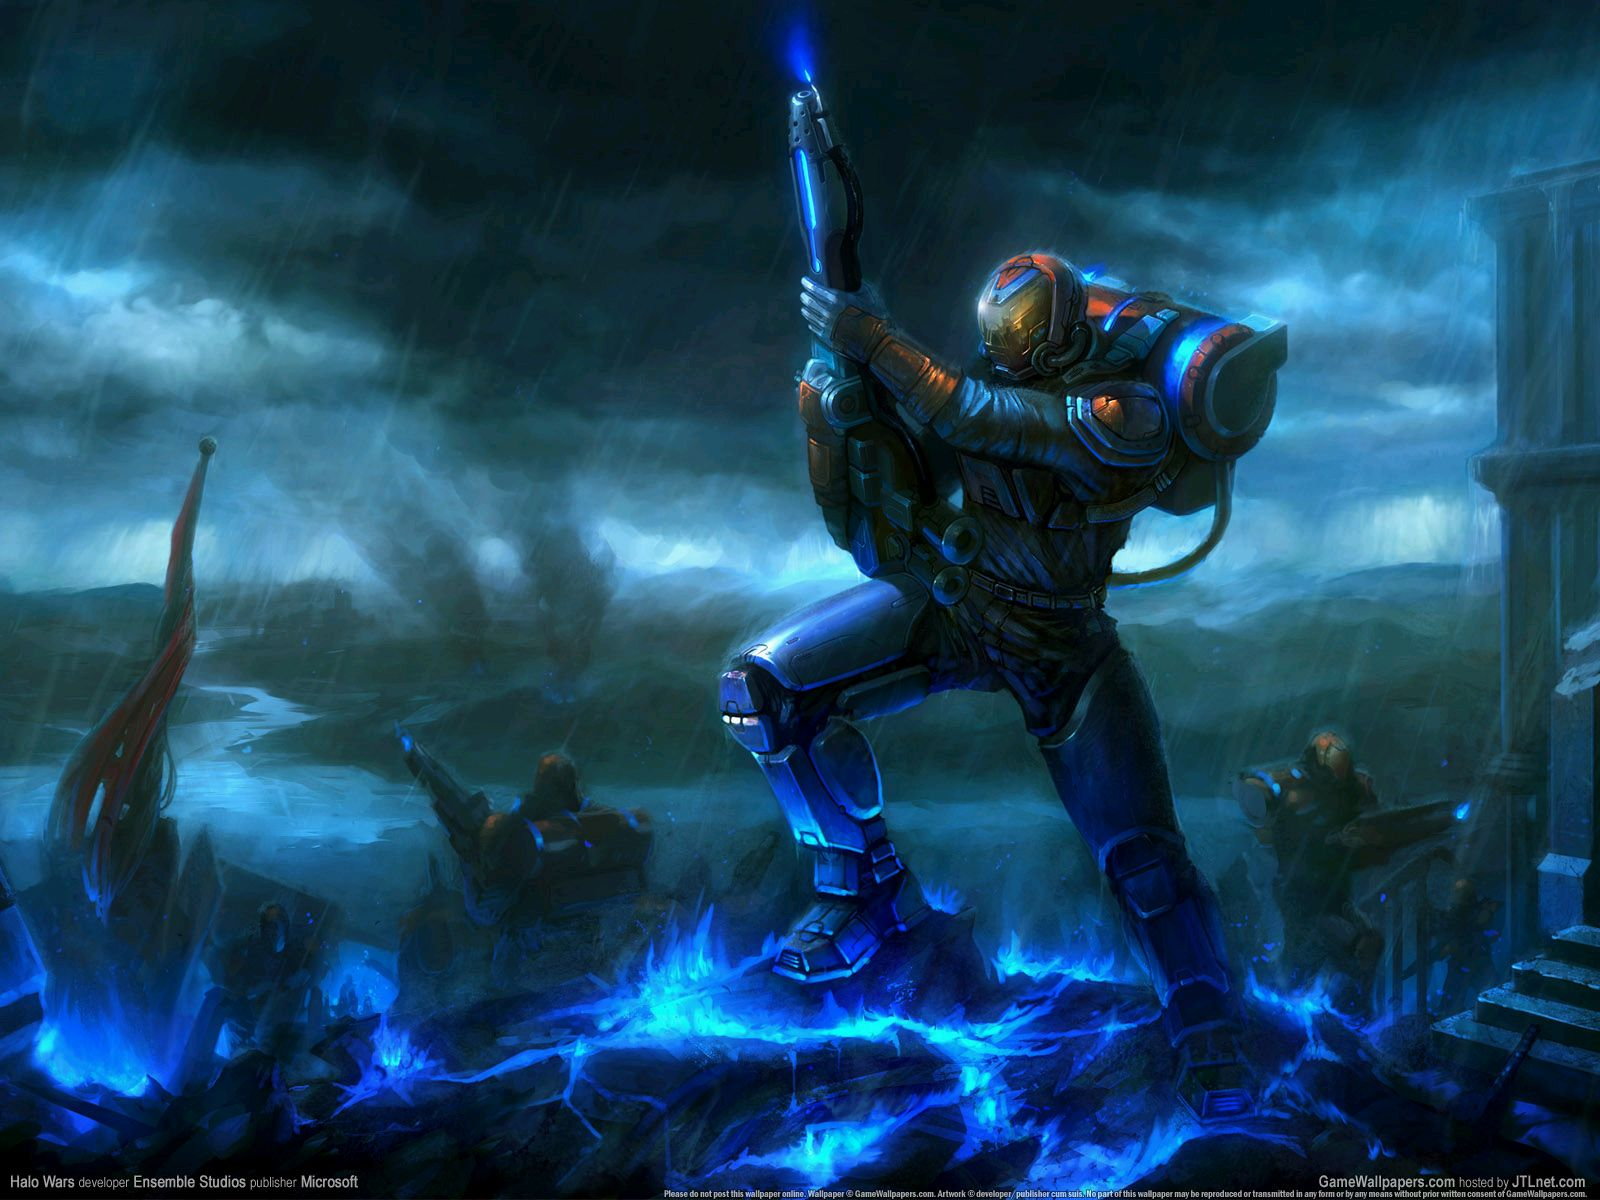 Halo Wars 2 Wallpaper: Cool Halo Wallpapers